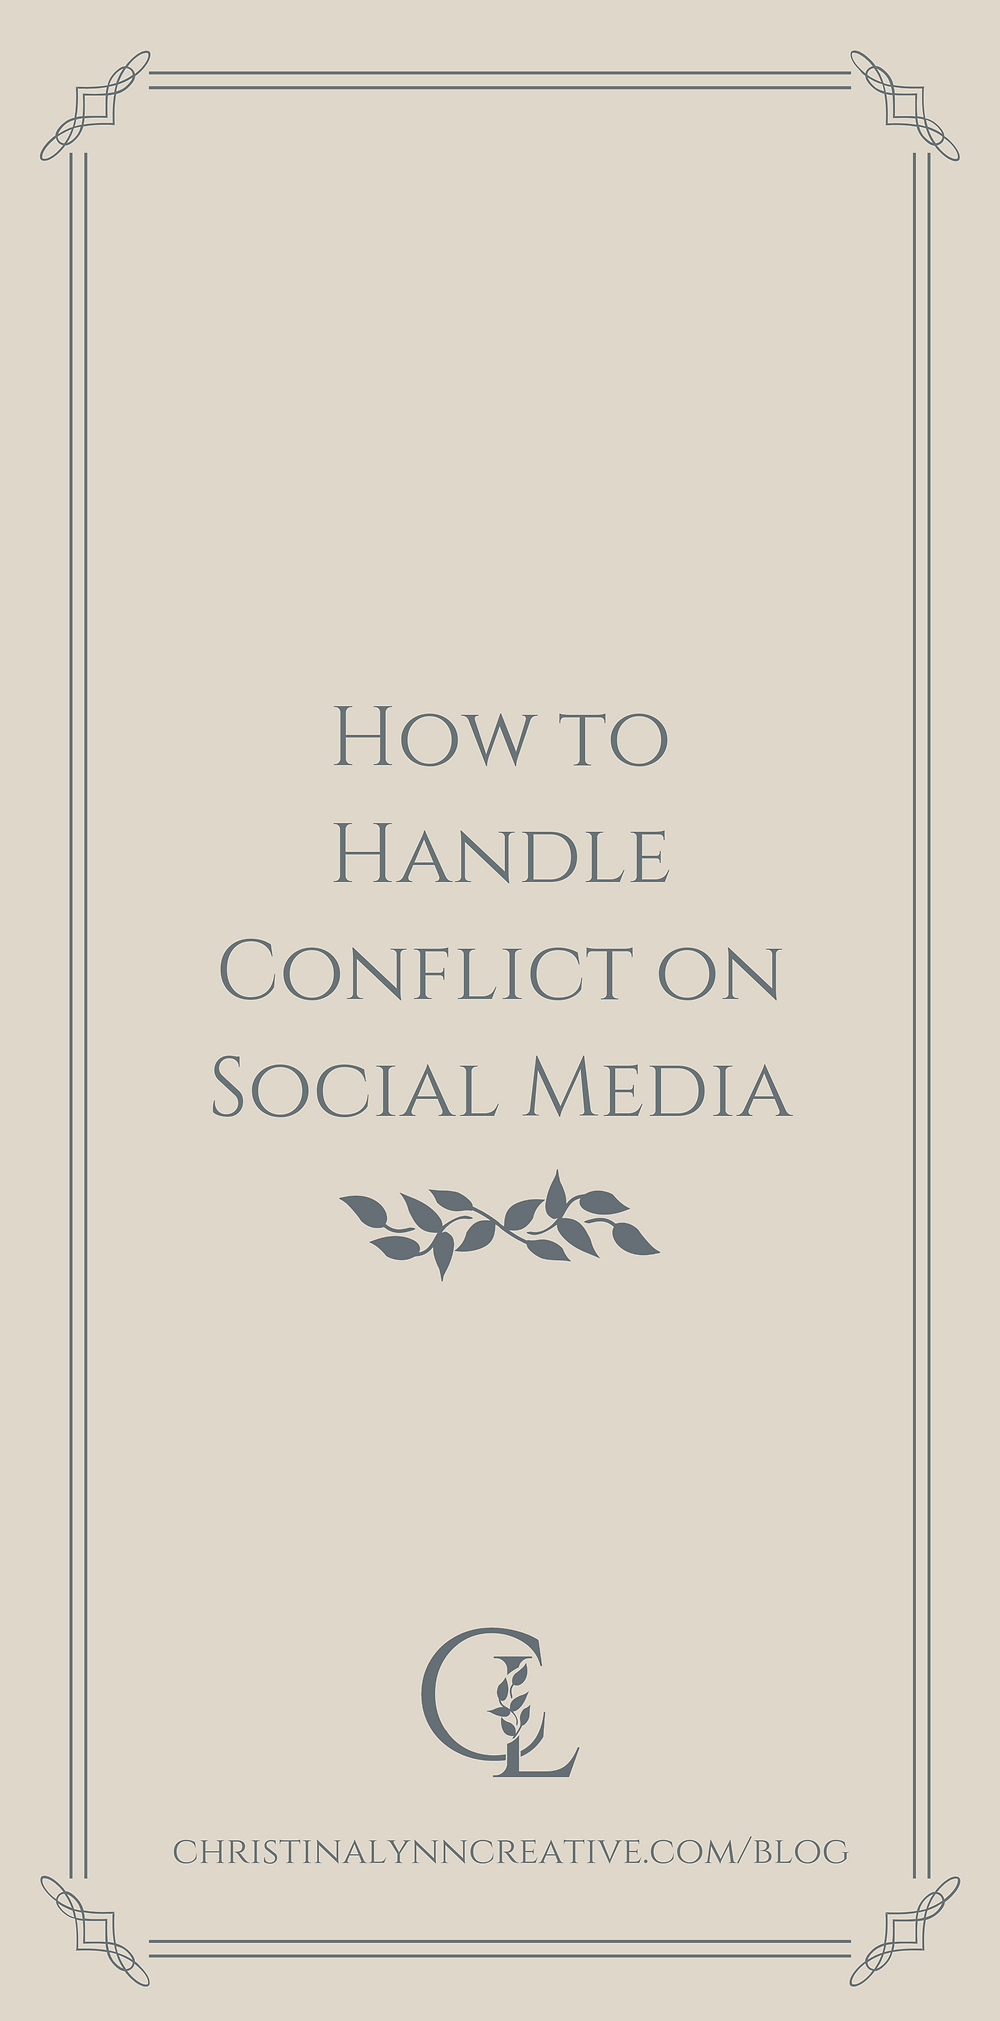 How to handle conflict on social media